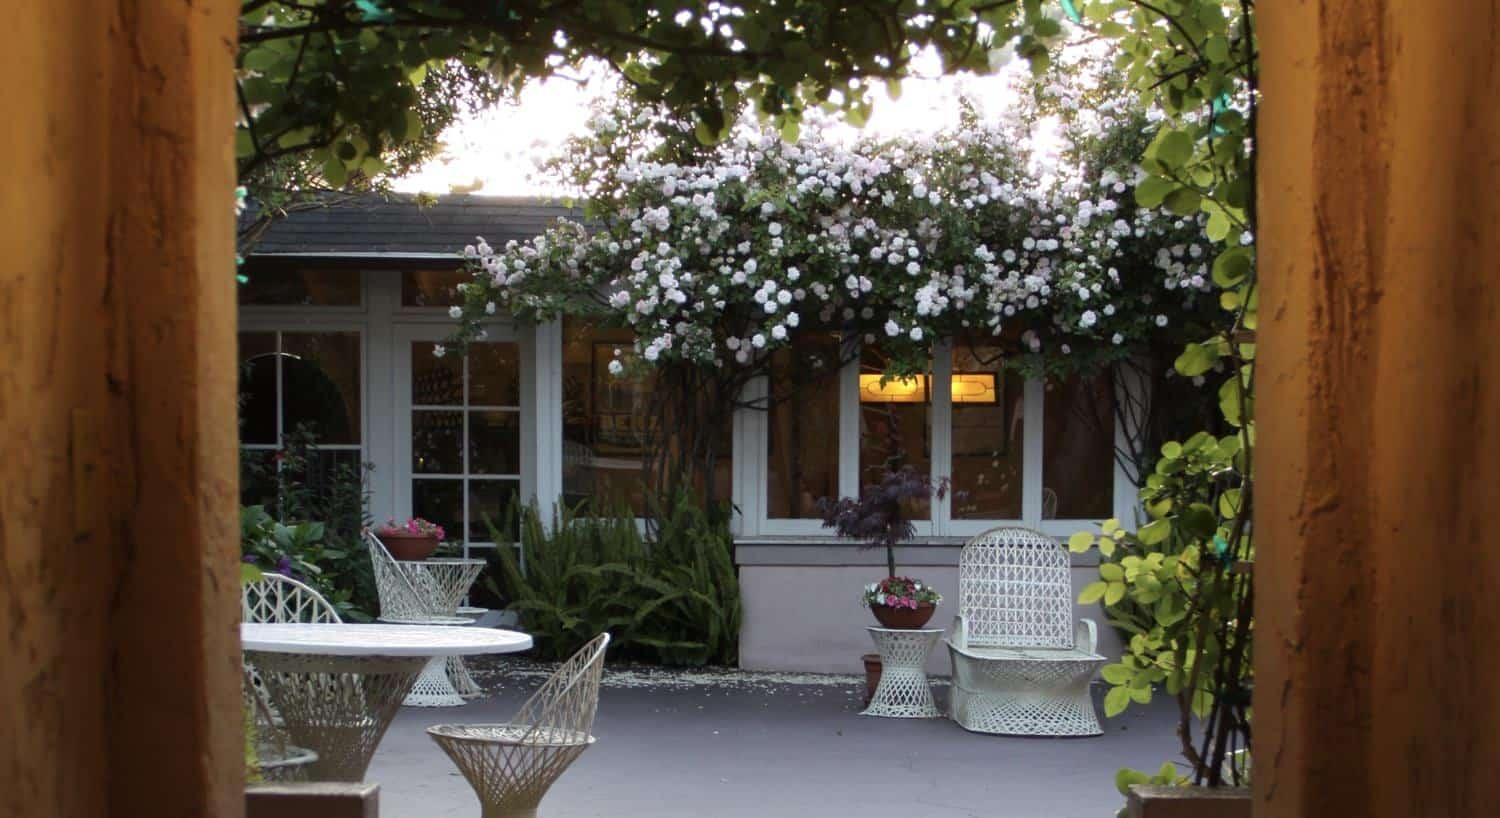 Courtyard with flowering vines and plants, and white patio chairs and tables